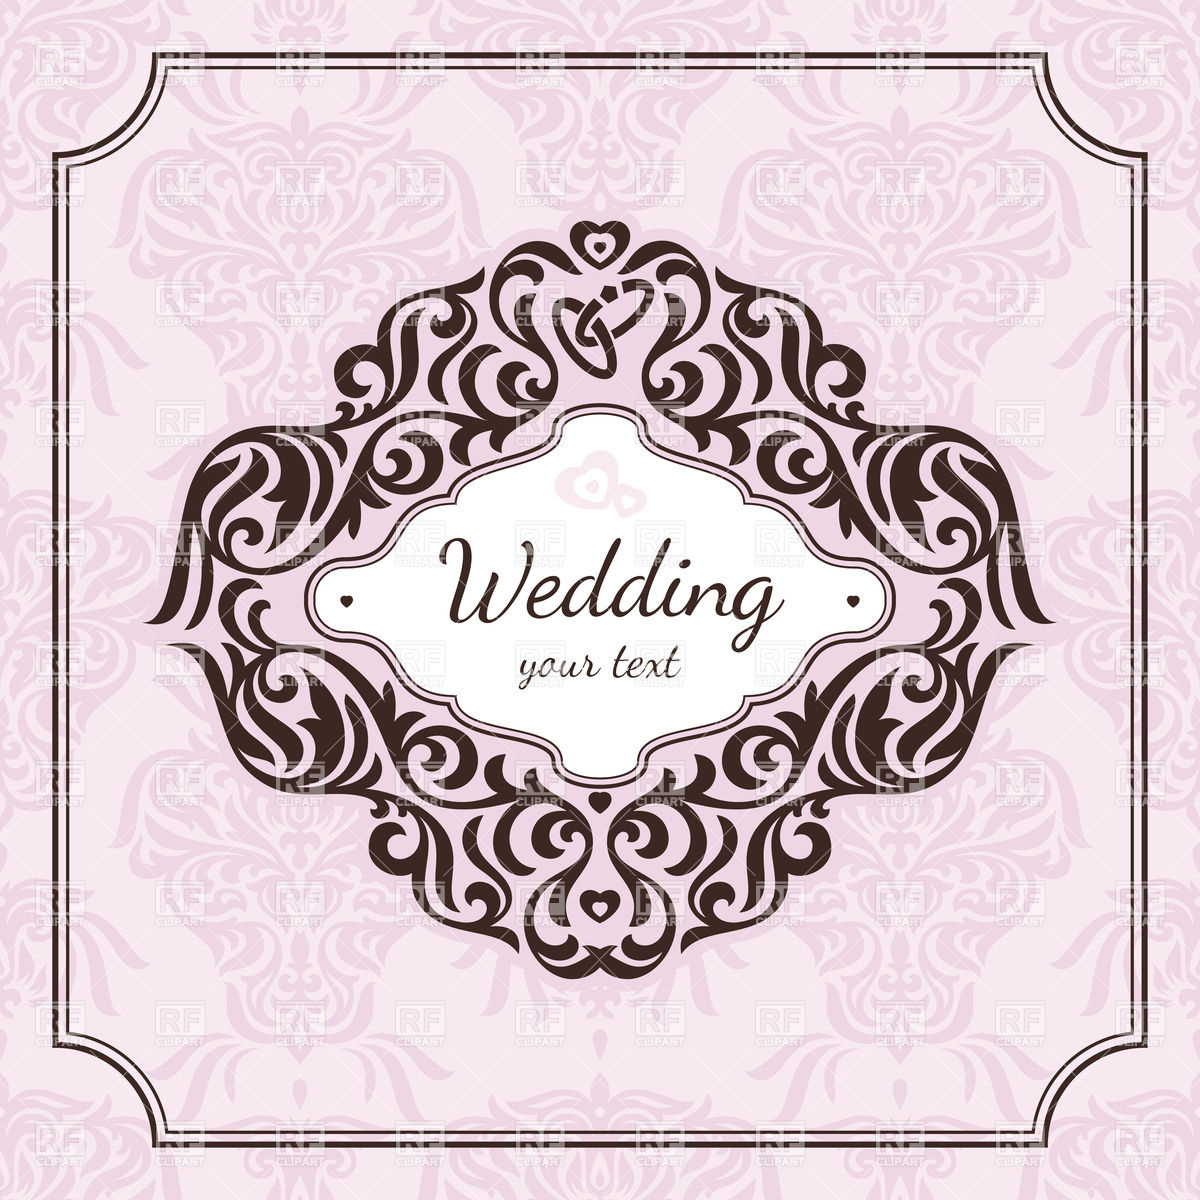 Wedding Invitation Vector Free Download At Getdrawings Com Free